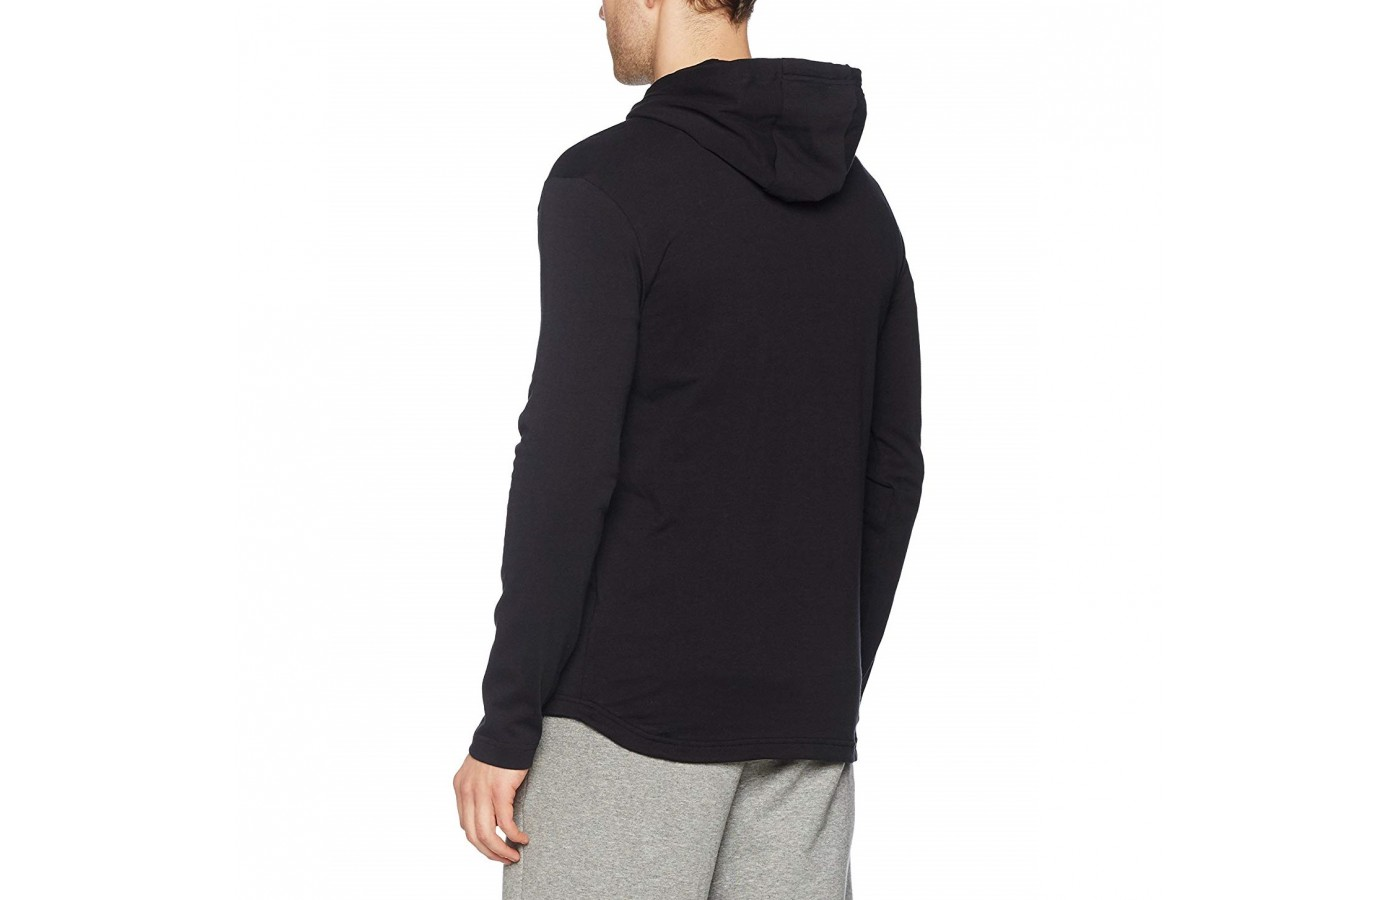 The Nike Club hoodie also offers a hood in order to keep the wearers head warm.